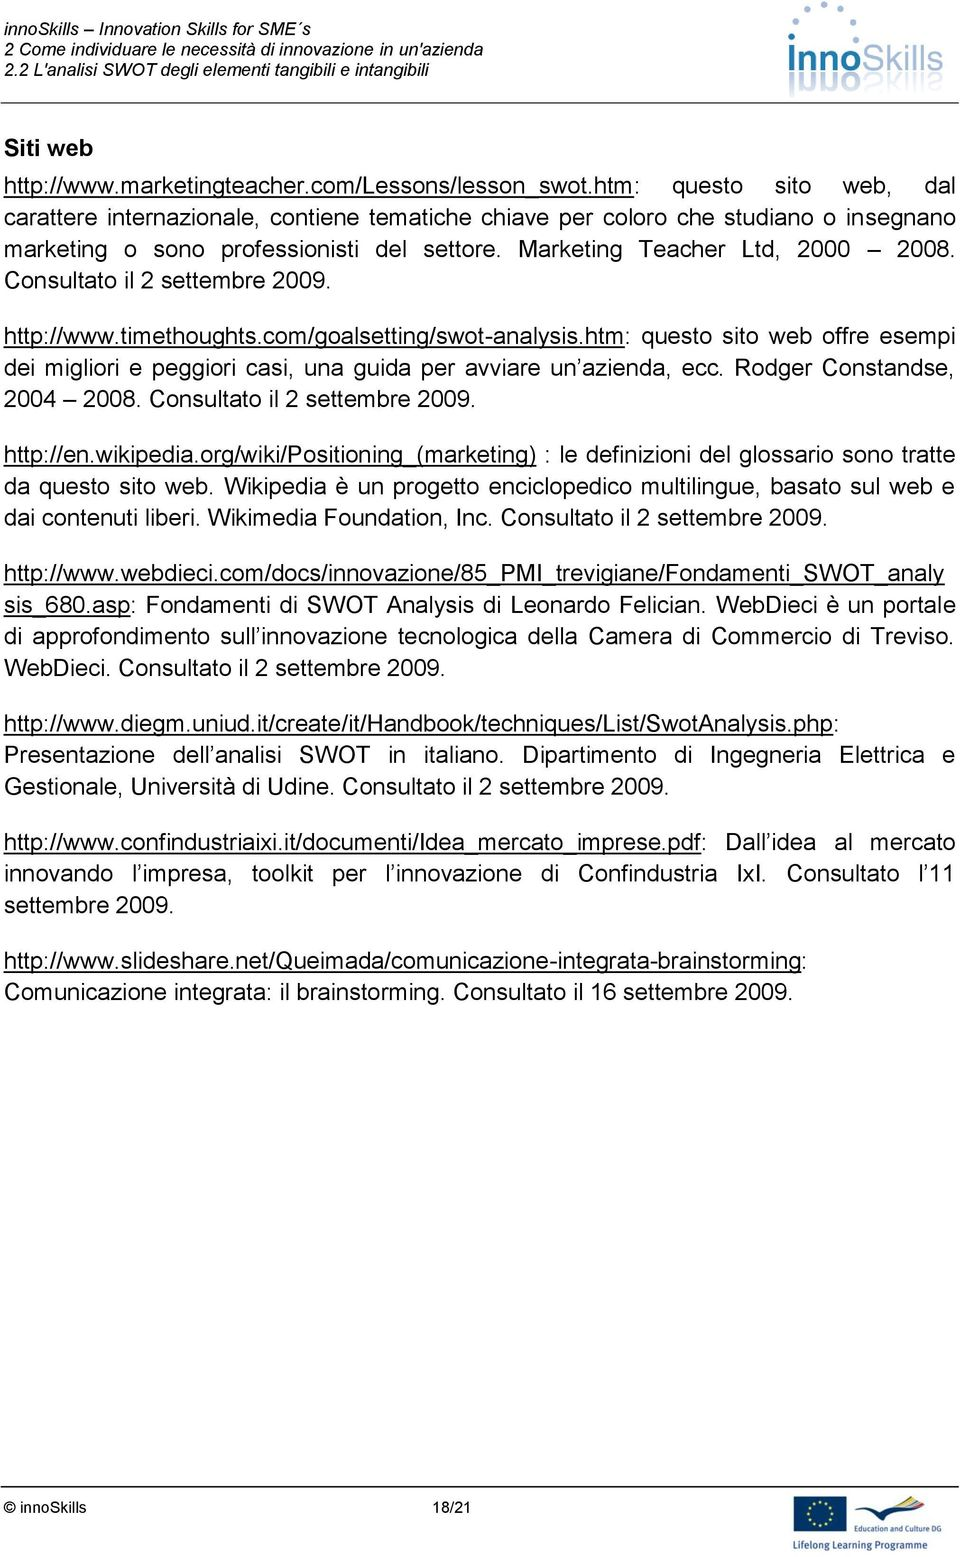 Consultato il 2 settembre 2009. http://www.timethoughts.com/goalsetting/swot-analysis.htm: questo sito web offre esempi dei migliori e peggiori casi, una guida per avviare un azienda, ecc.